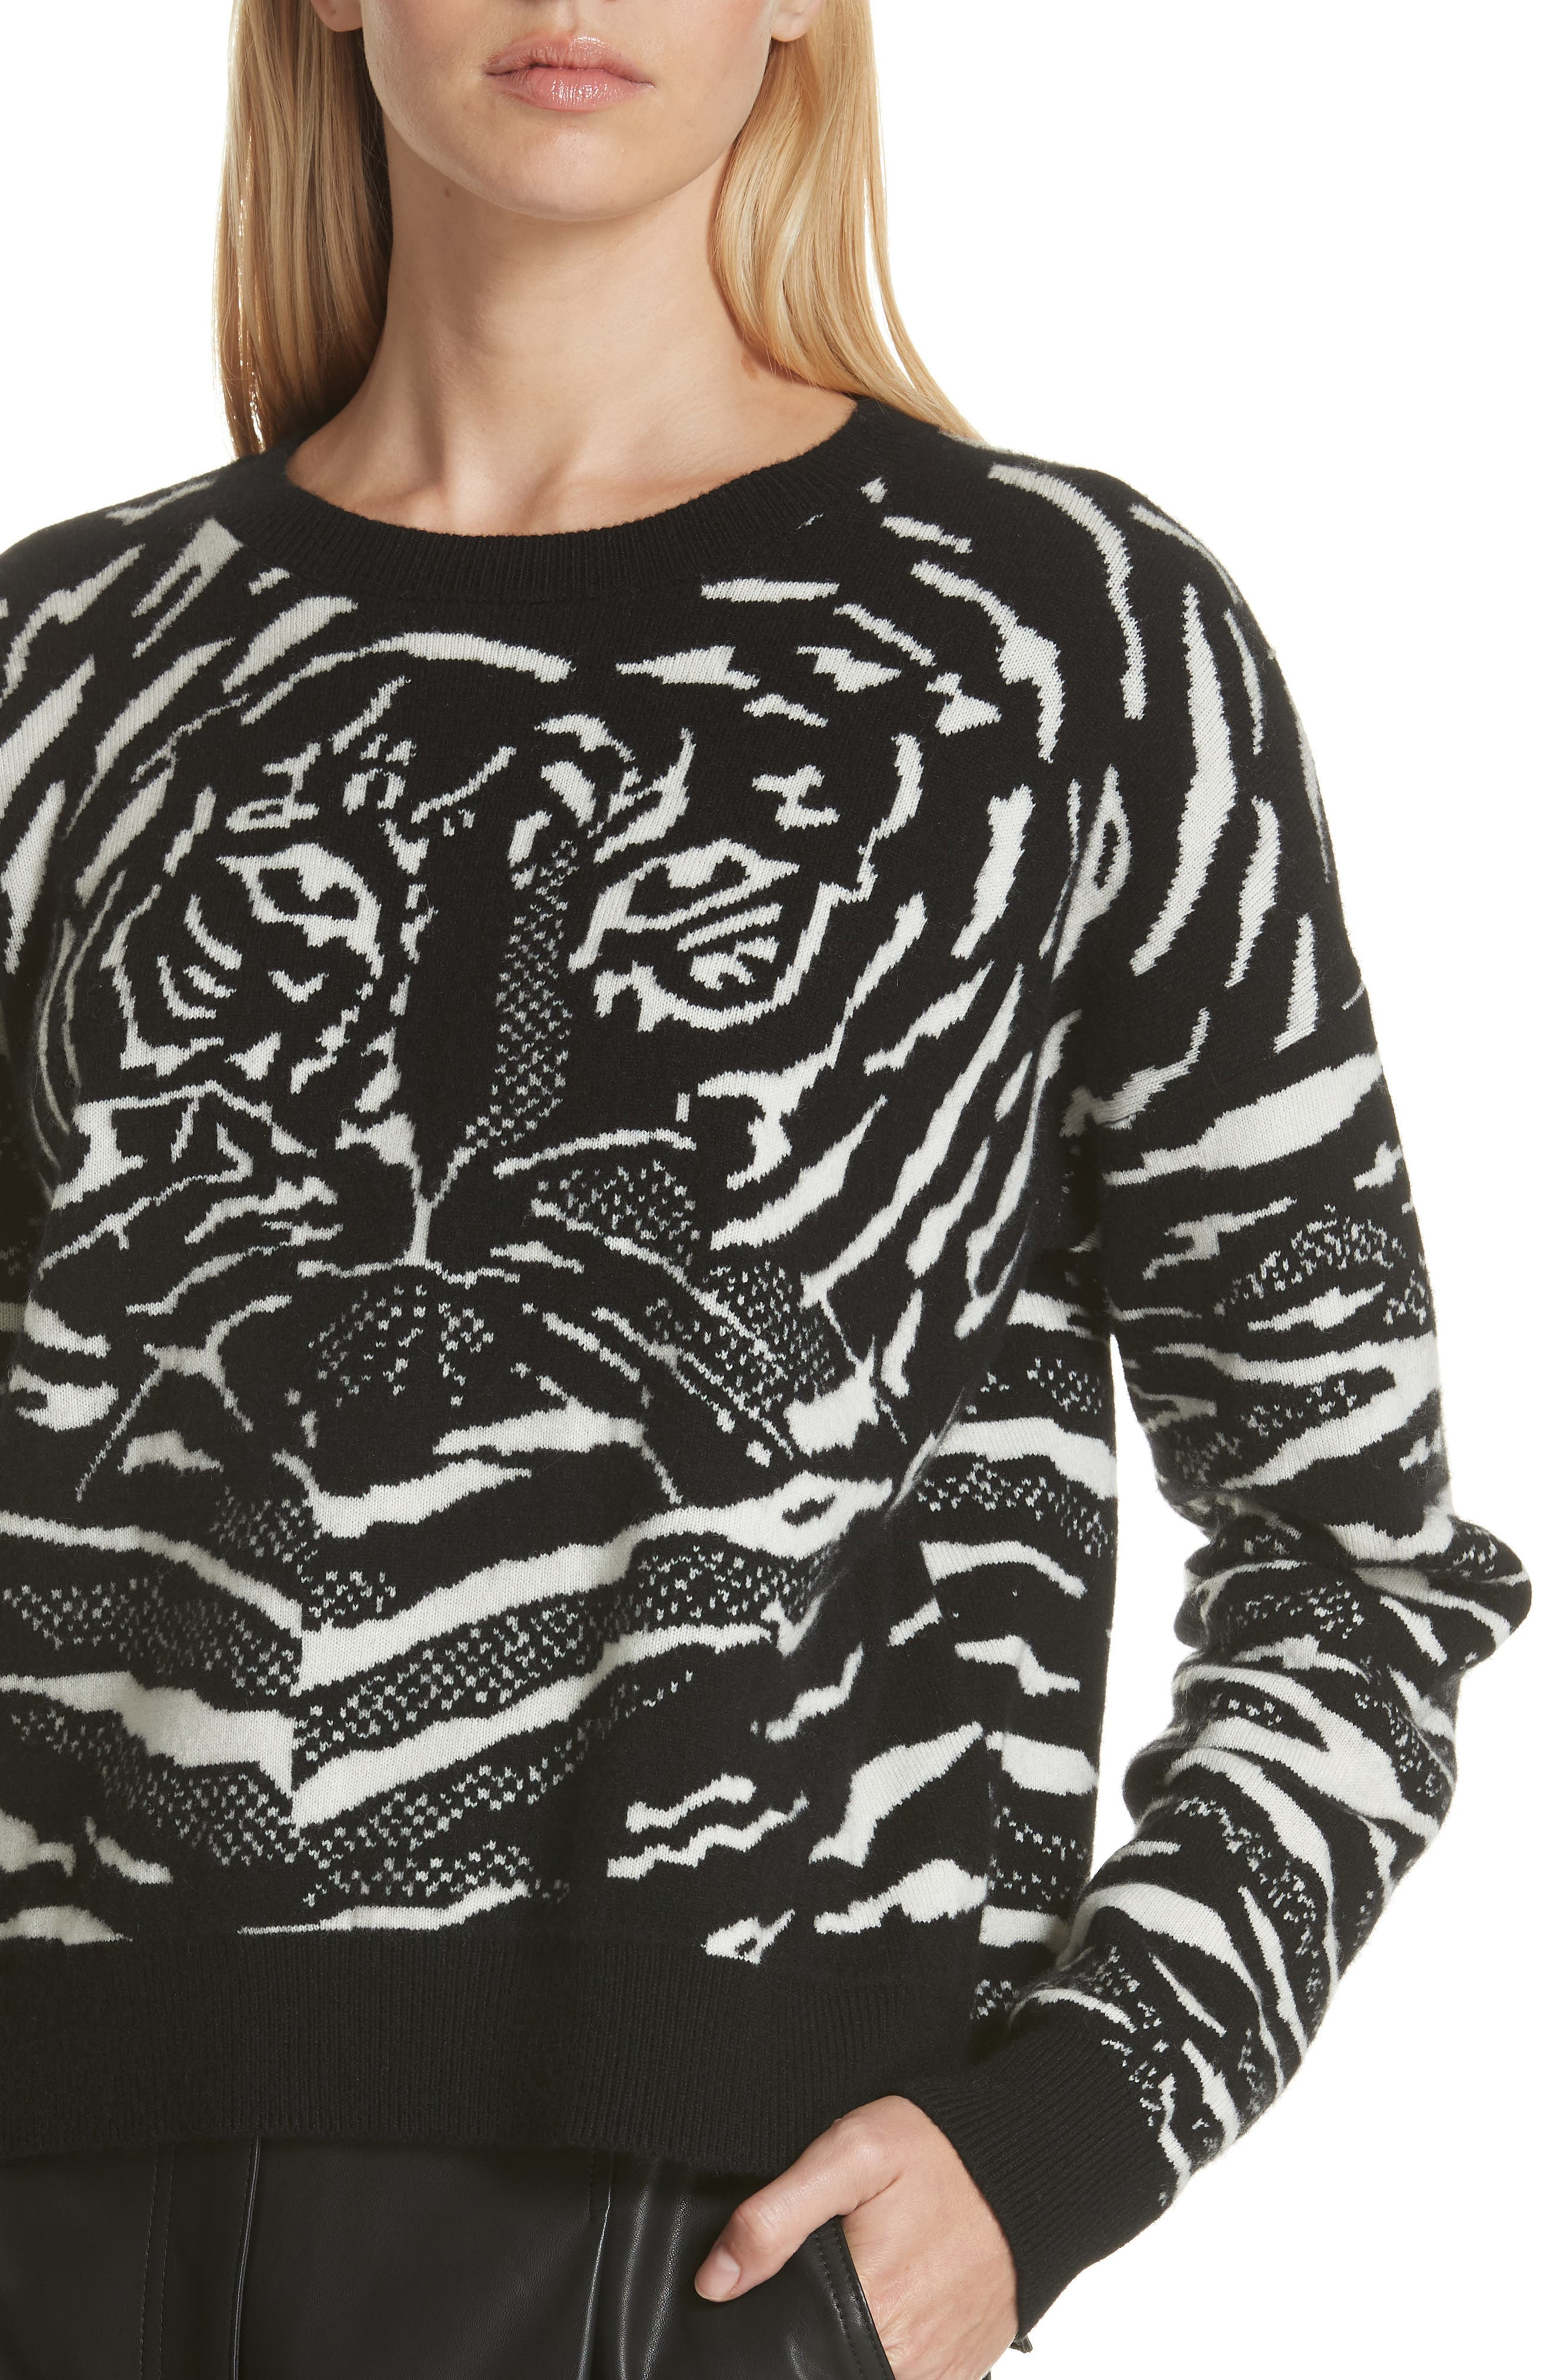 Wool & Cashmere Sweater,                             Alternate thumbnail 4, color,                             BLACK/ WHITE